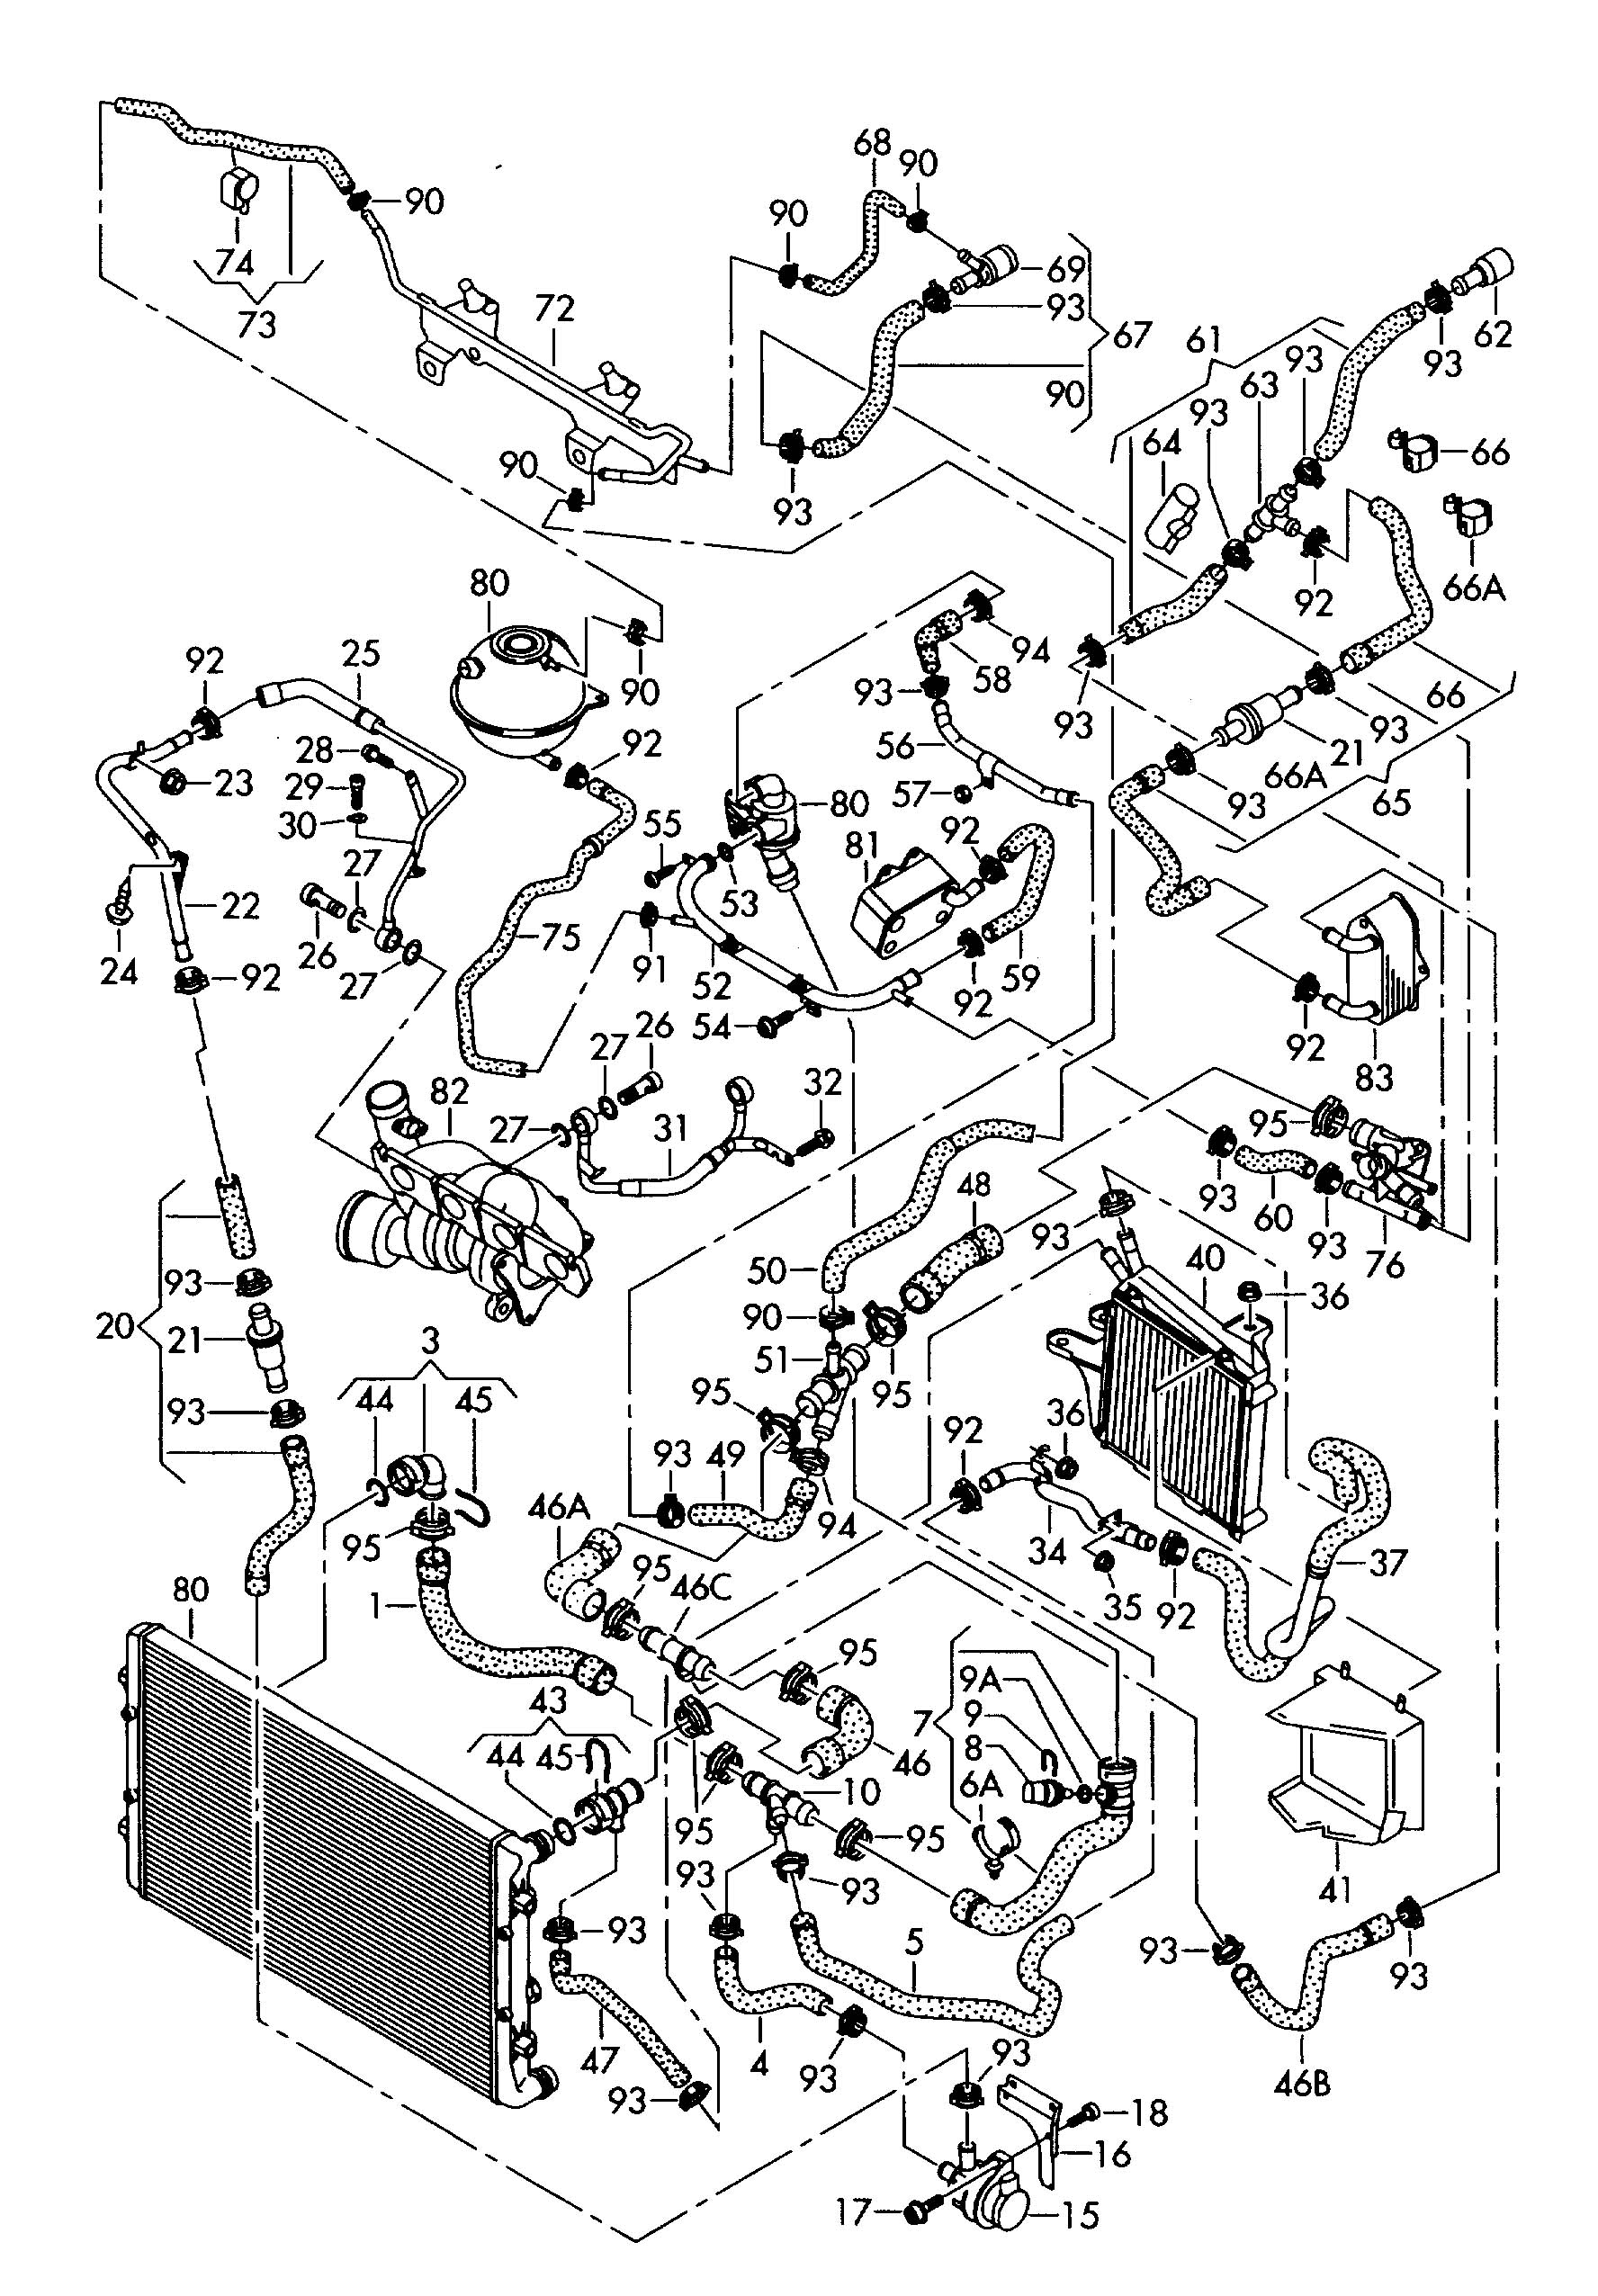 hight resolution of jetta parts diagram free engine image for user manual download